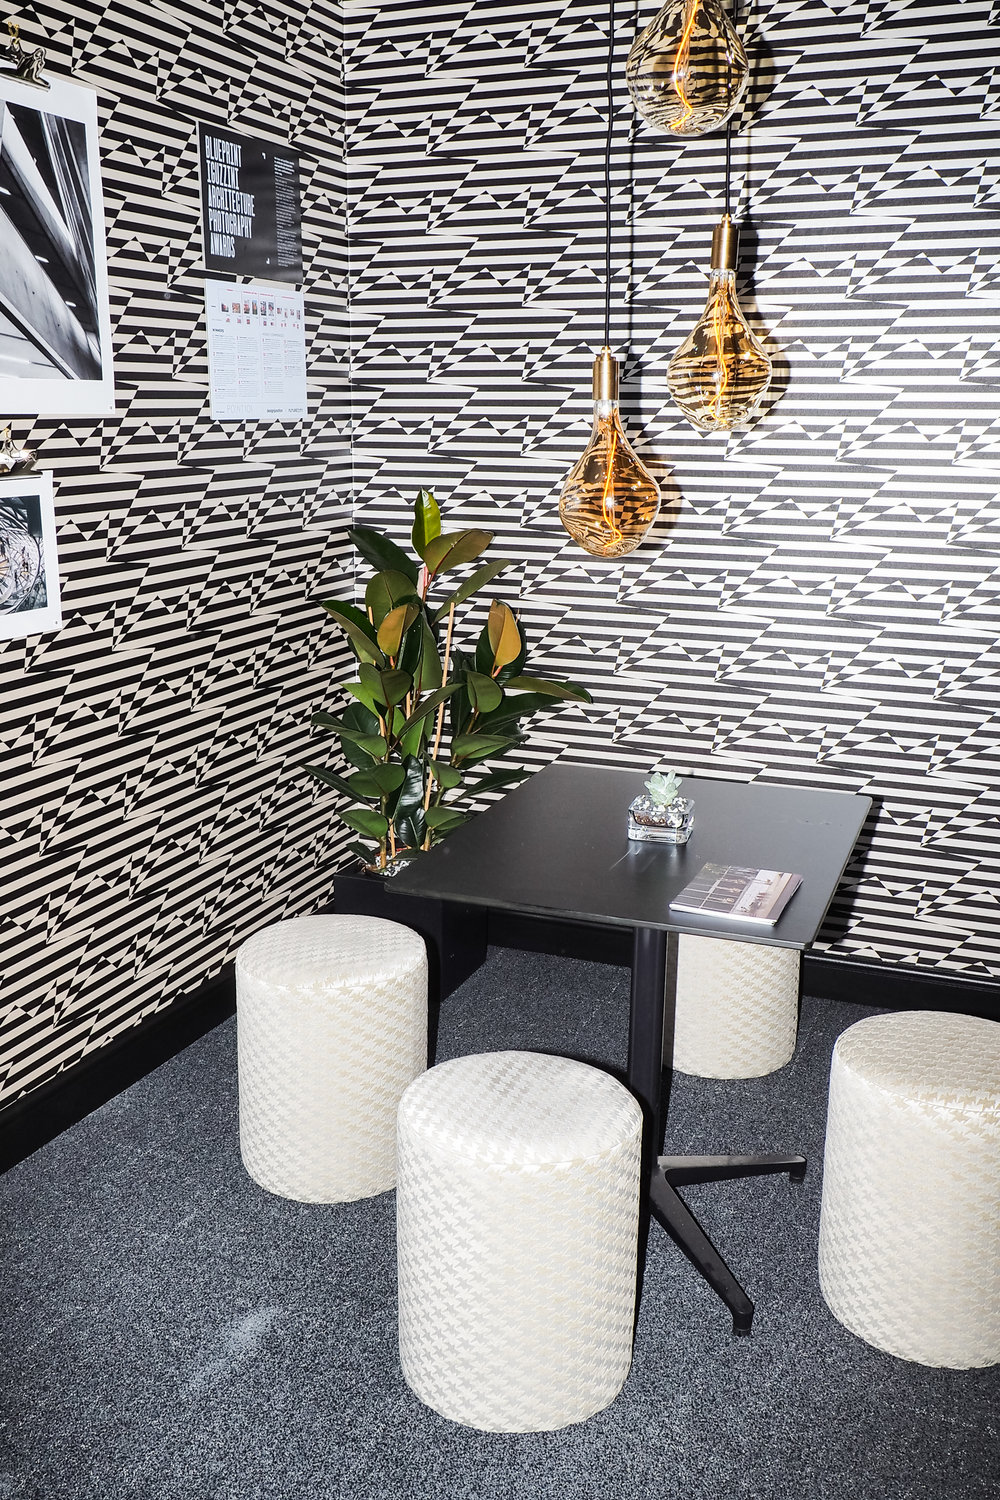 11. mod lounge - Eley Kishimoto teamed up with Kirkby to create a VIP lounge worth visiting